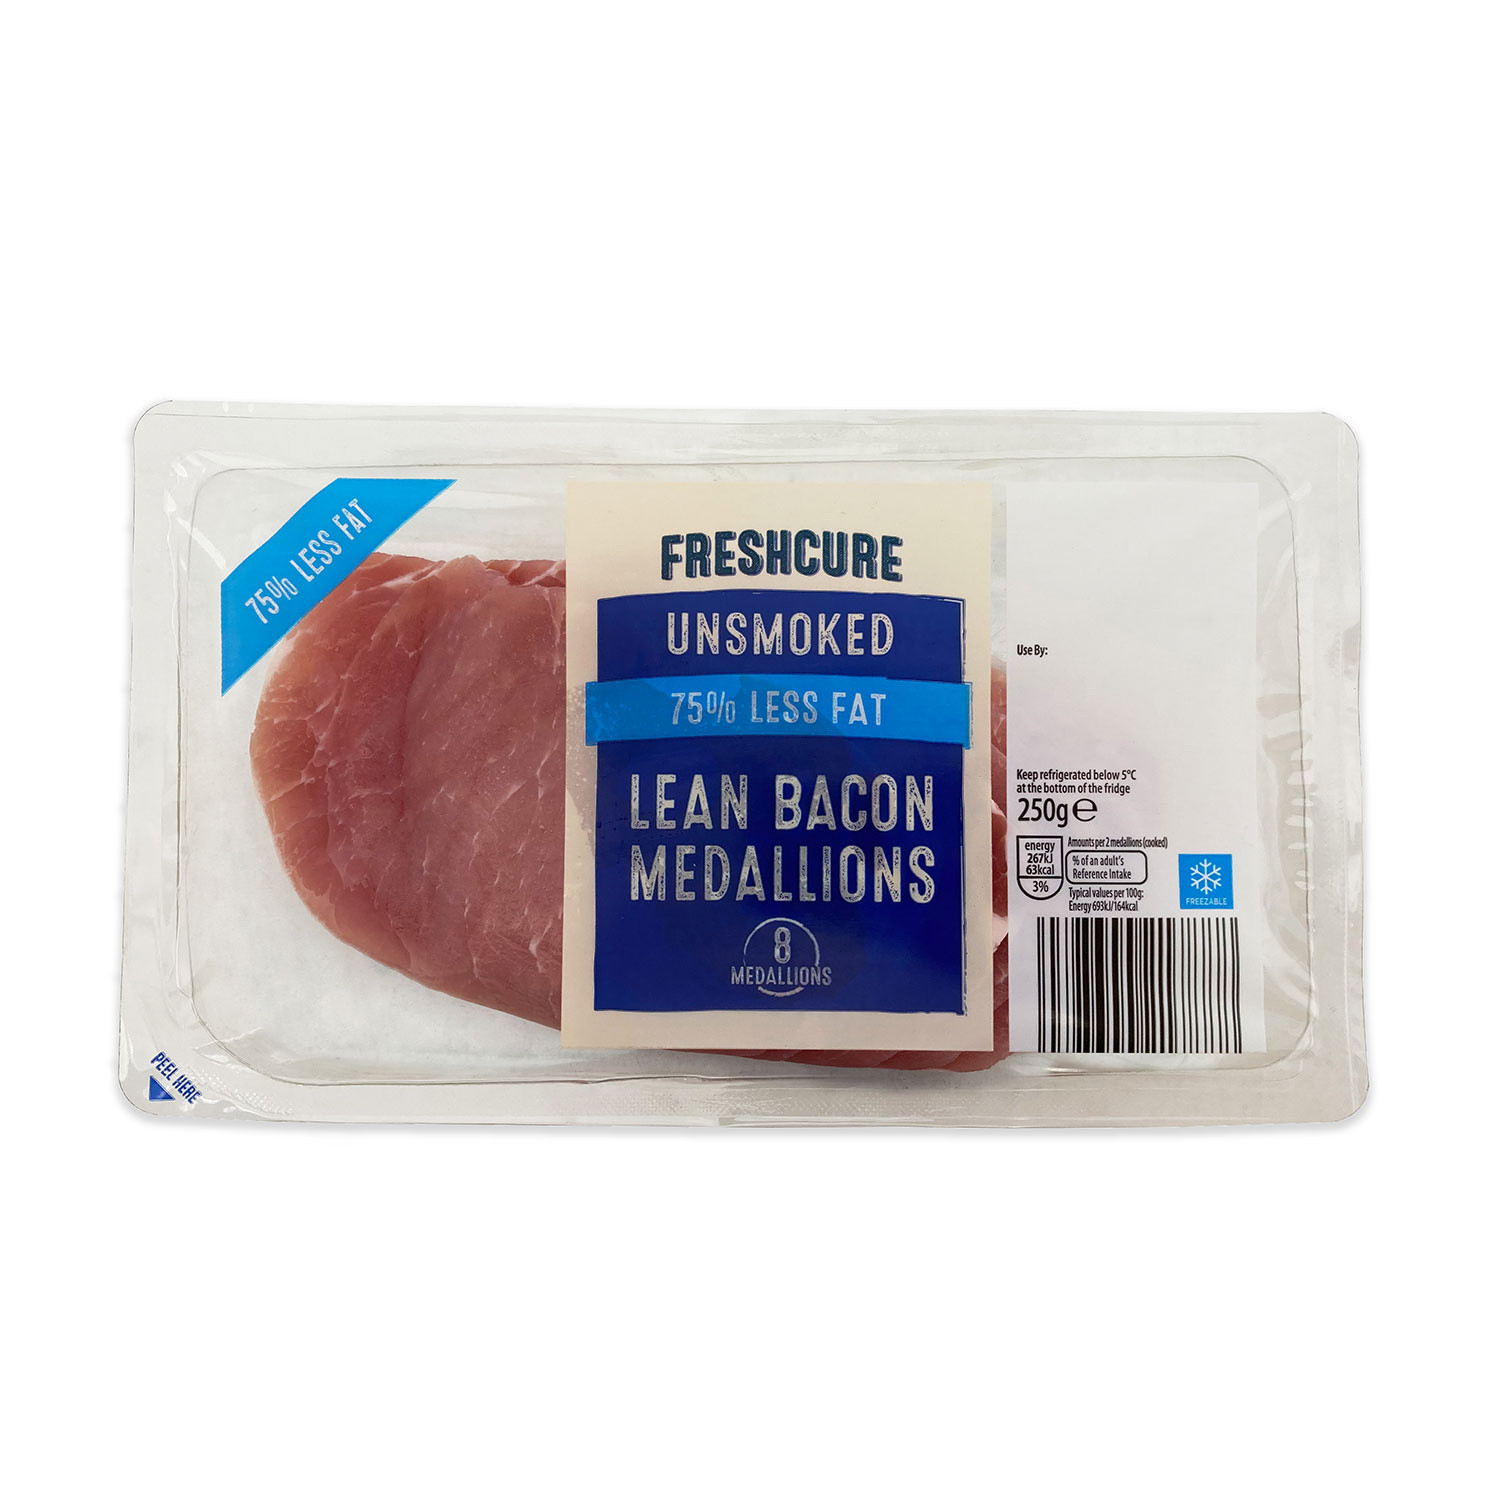 Unsmoked Lean Bacon Medallions